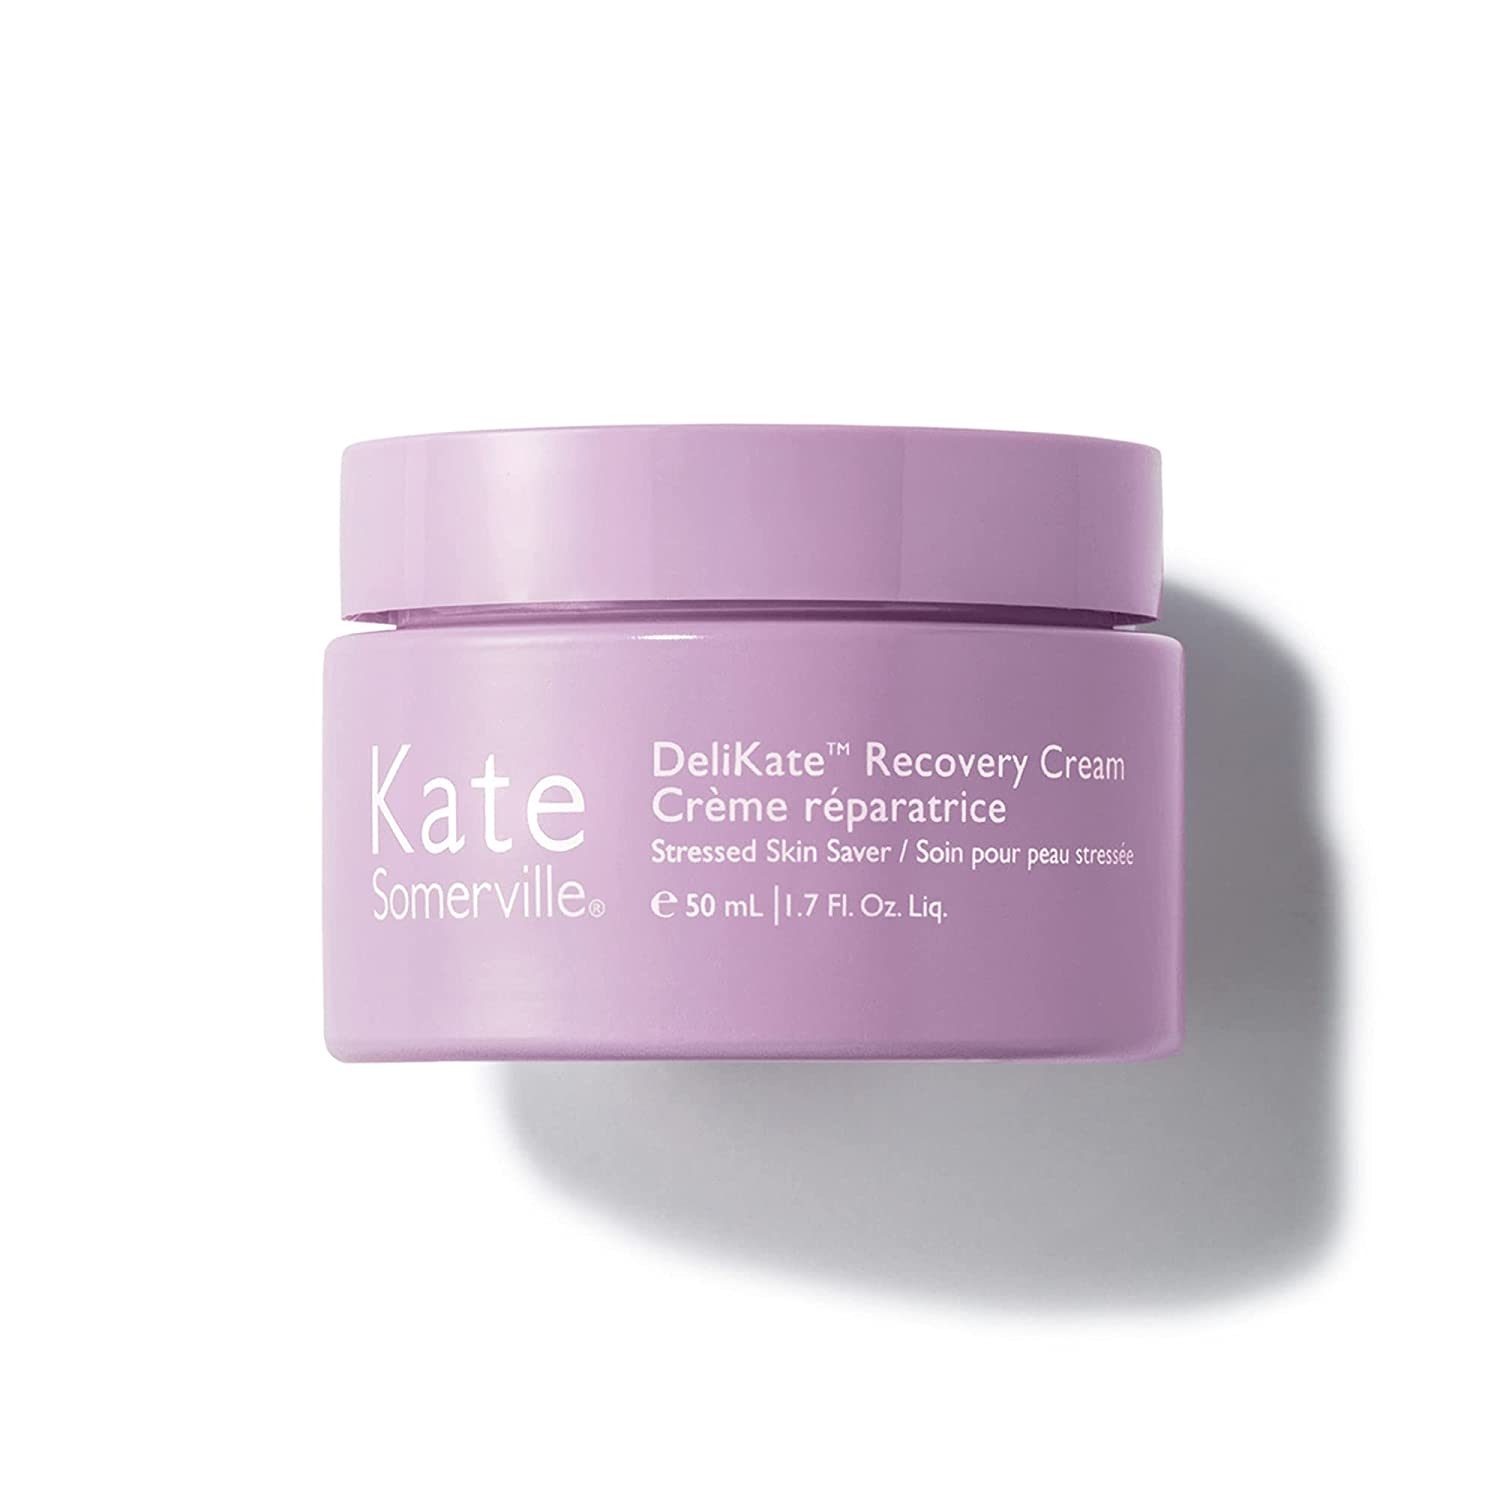 Kate Somerville DeliKate Recovery Cream   Calms Stressed Skin & Reduces Redness   Long Lasting Relief & Hydration